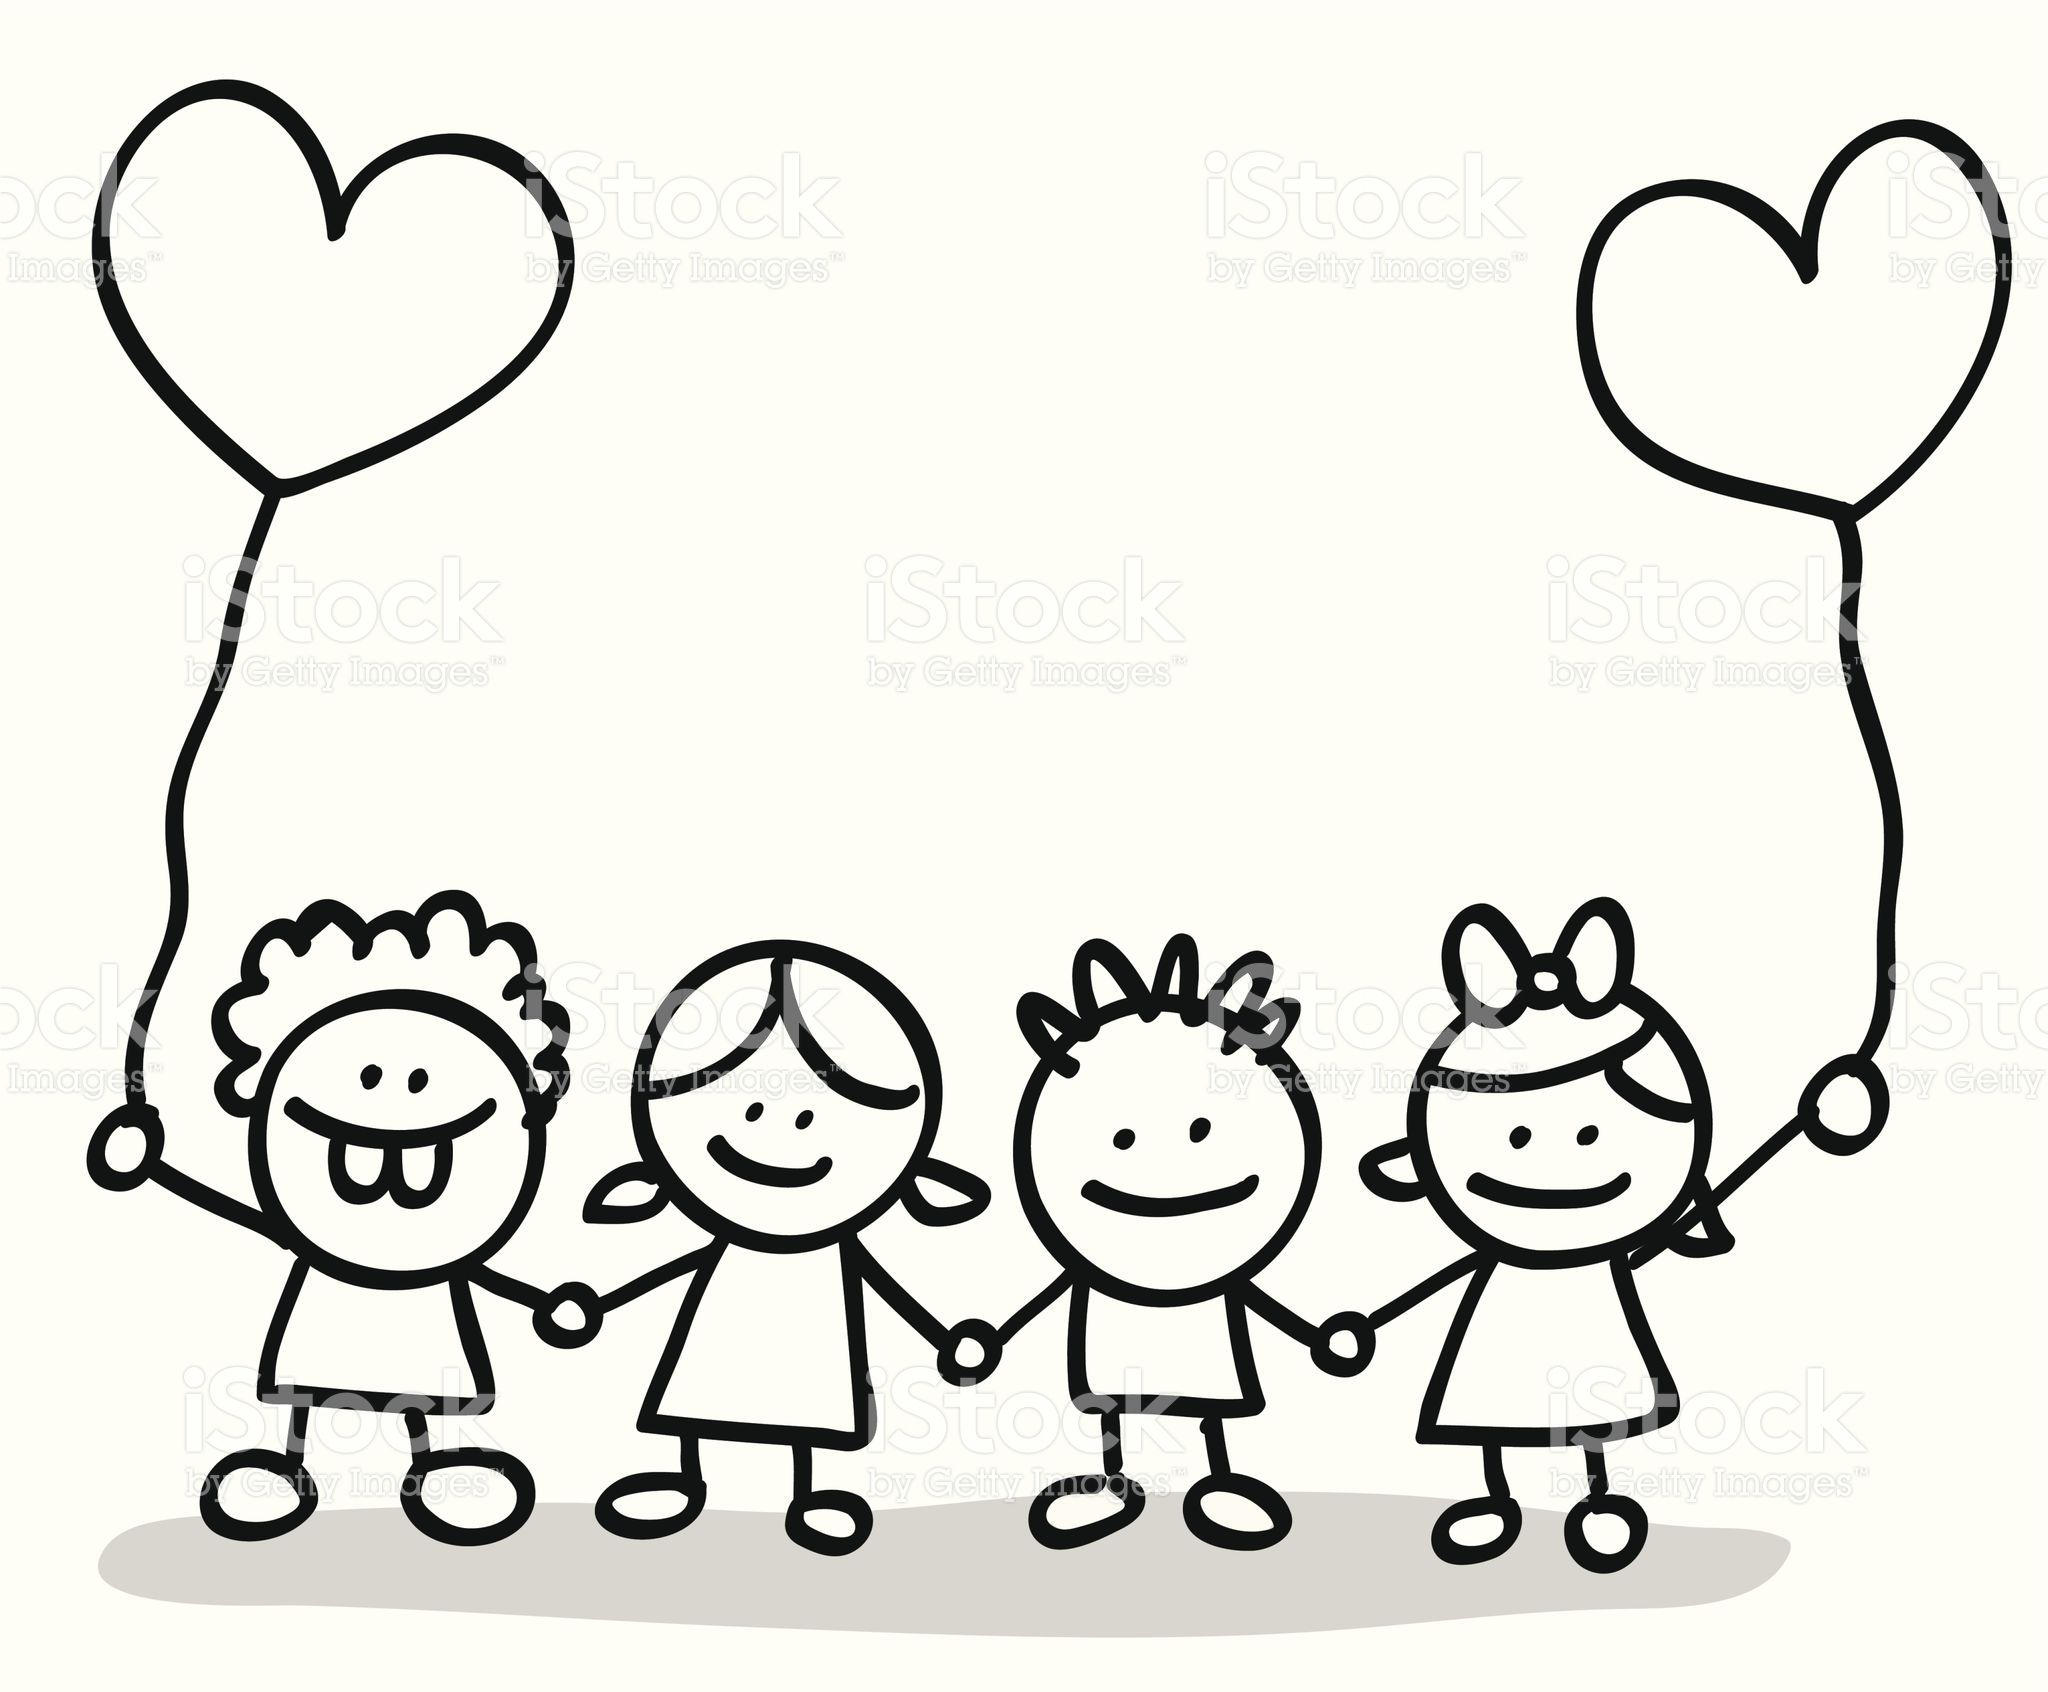 Doodle Style Little Cude Children With Heart Shape Balloon